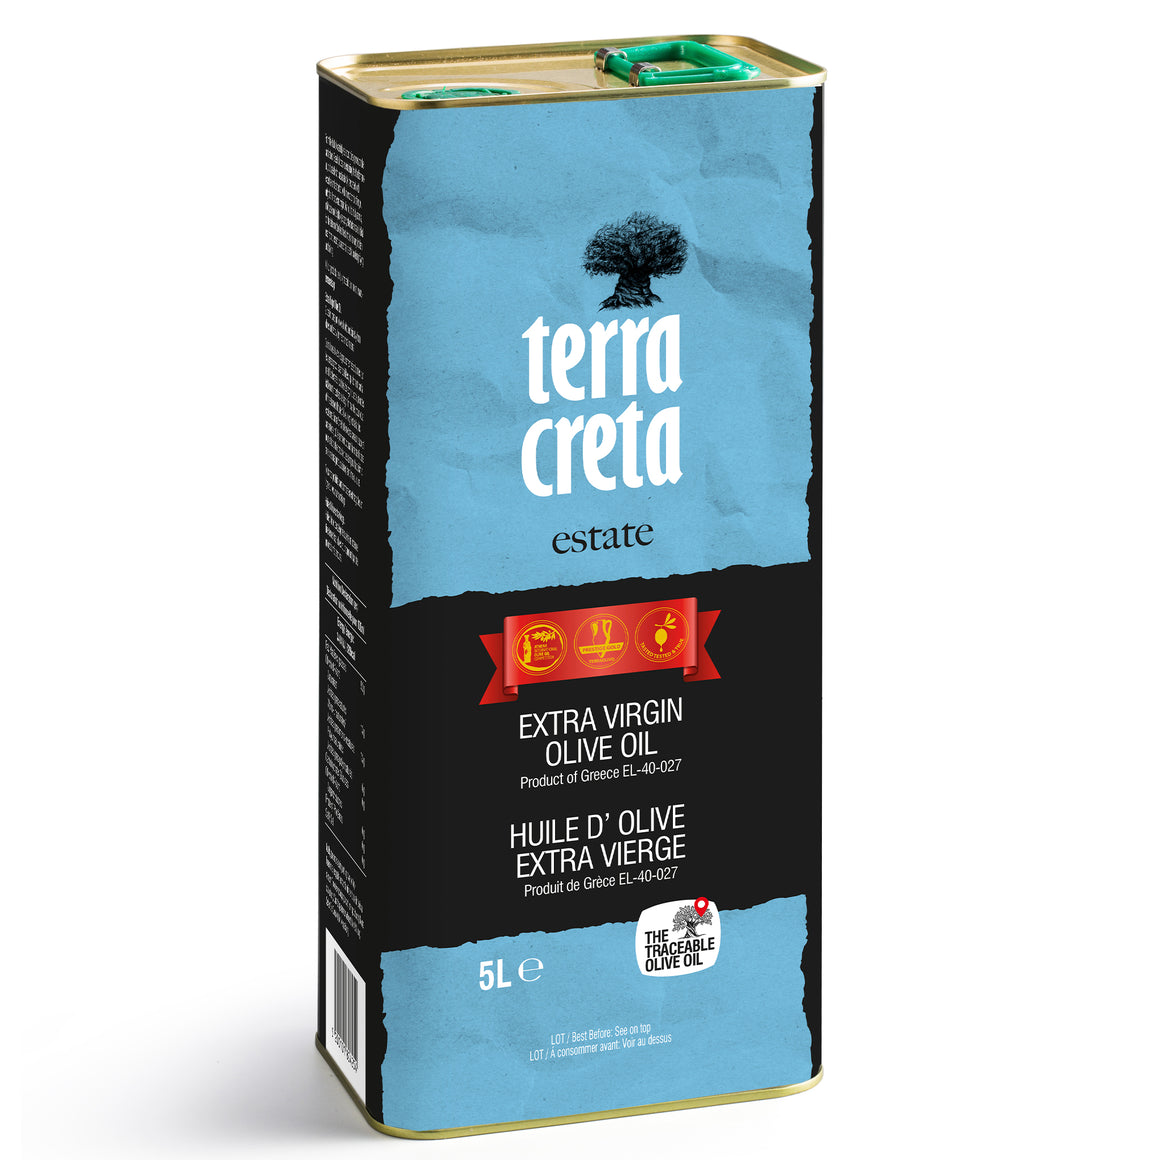 Terra Creta Greek Extra Virgin Olive Oil - 5L